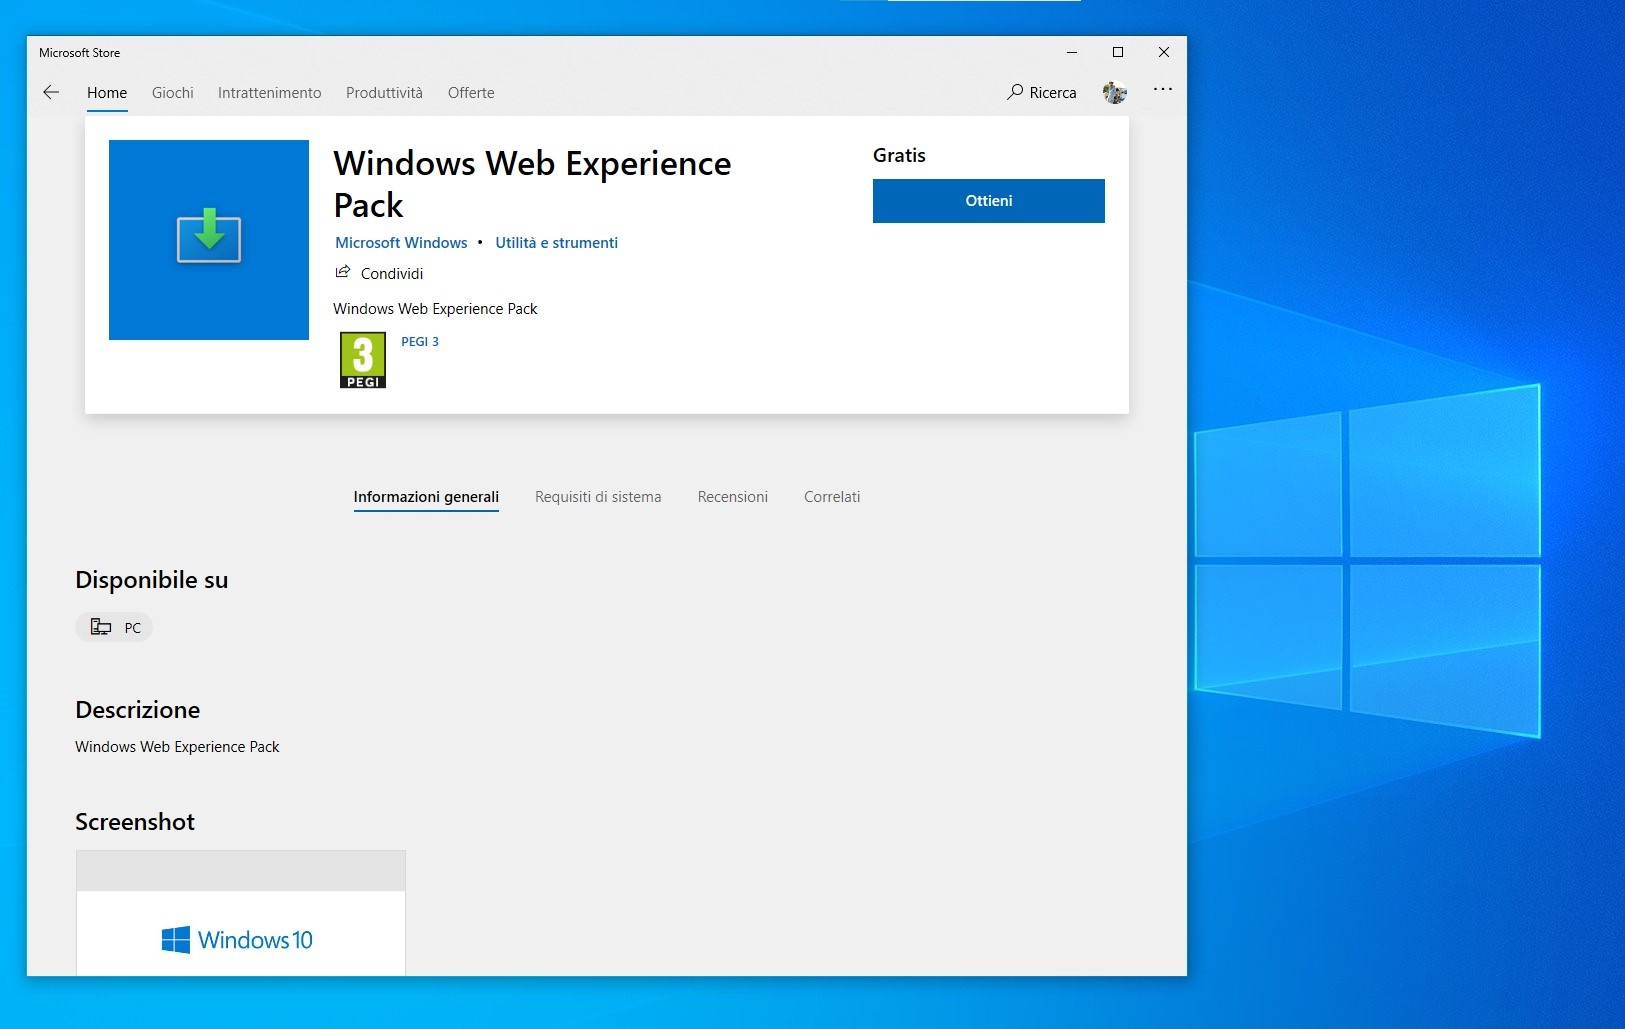 Windows Web Experience Pack - Microsoft Store per Windows 10